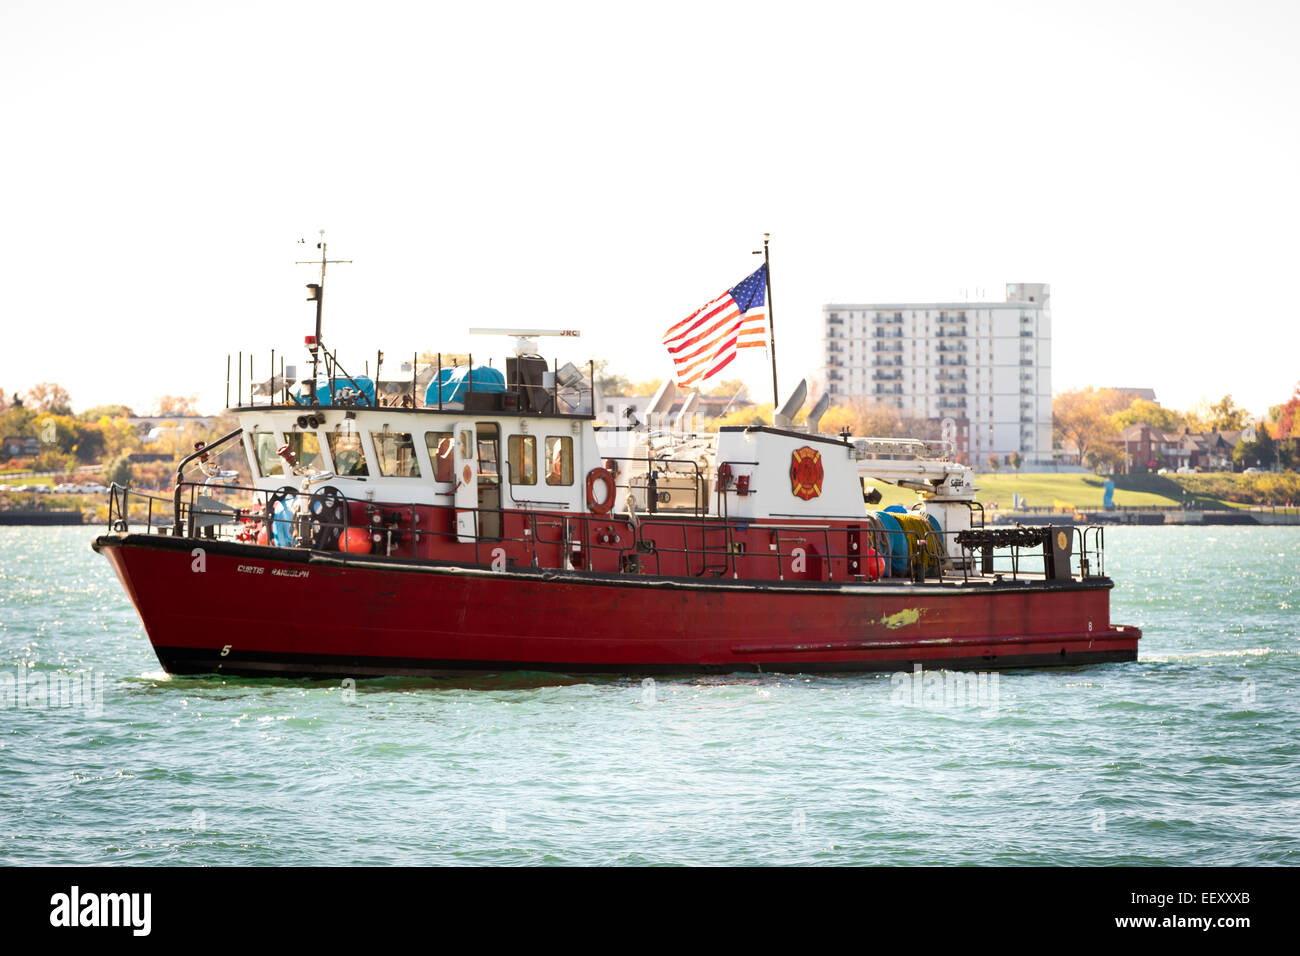 Fireboat of the Detroit Fire Department, Michigan, USA, Oct. 25, 2014. - Stock Image